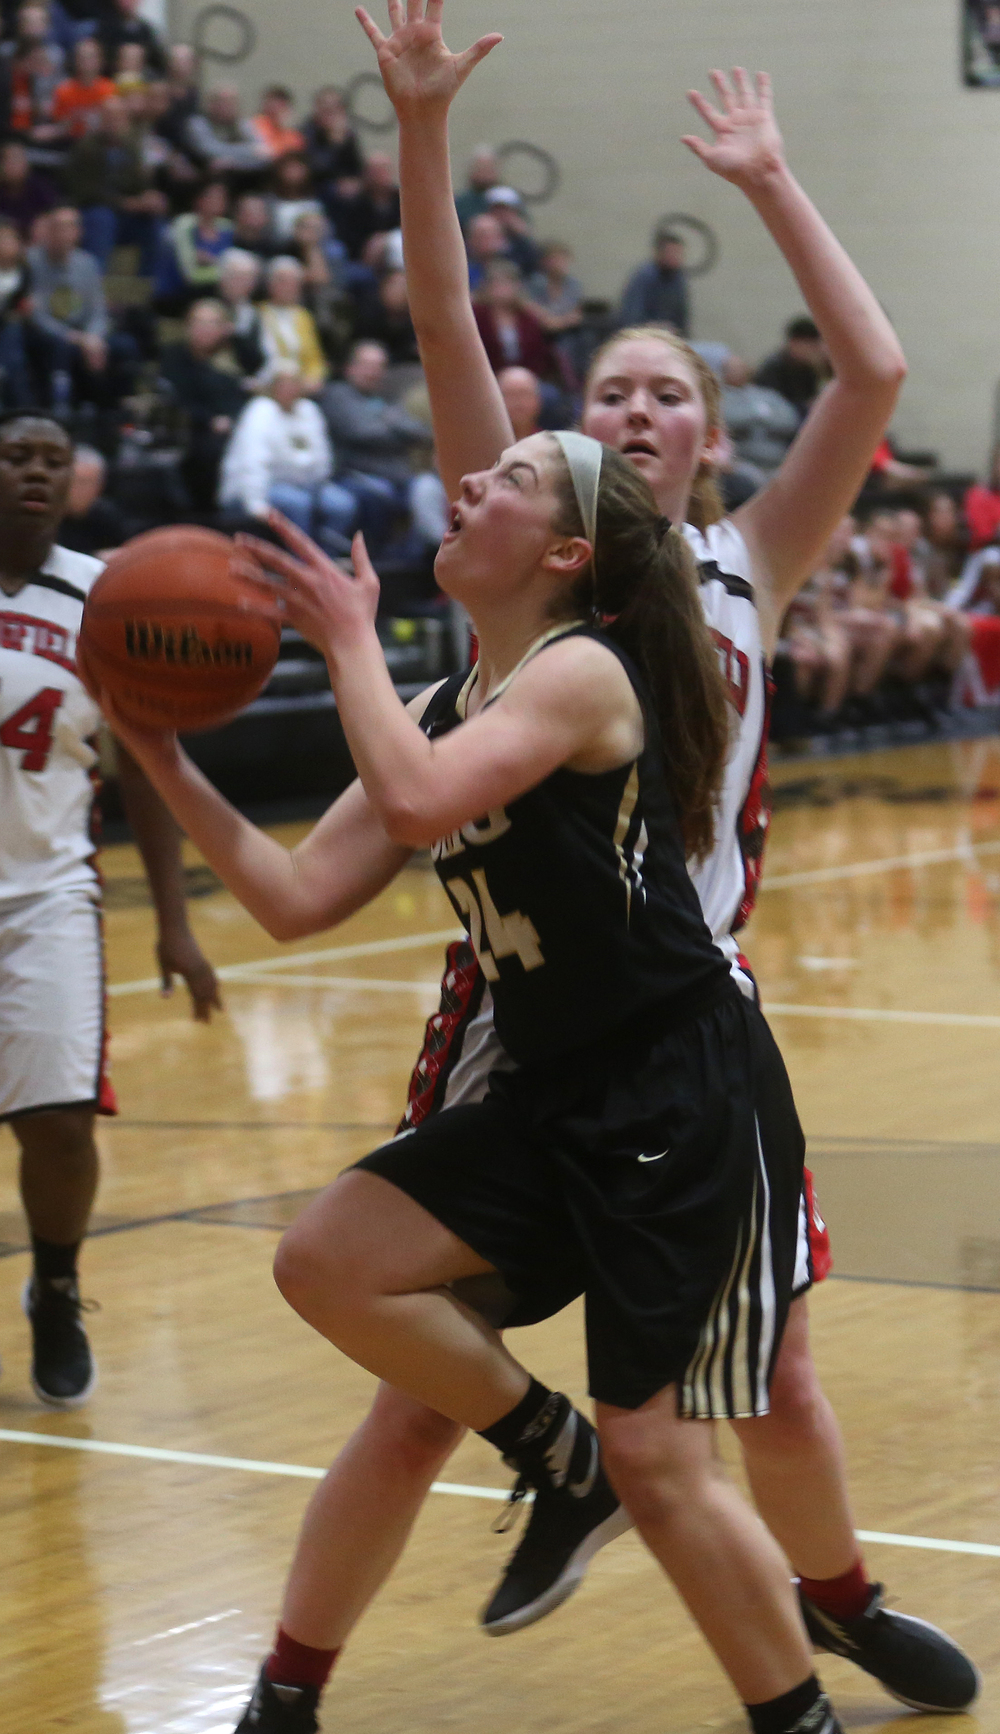 SHG player Anna Lowis prepares to make a shot in the second half. David Spencer/The State Journal Register